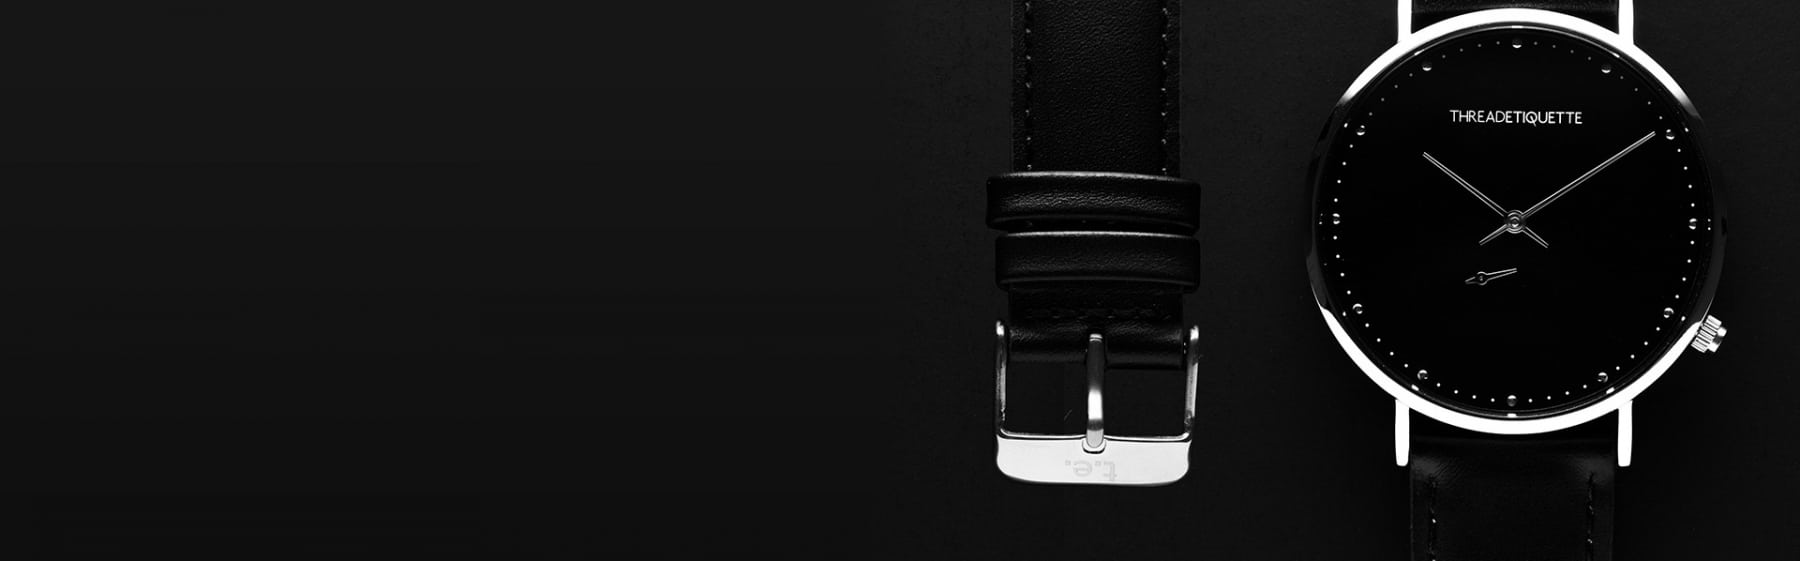 thread etiquette watch black with strap